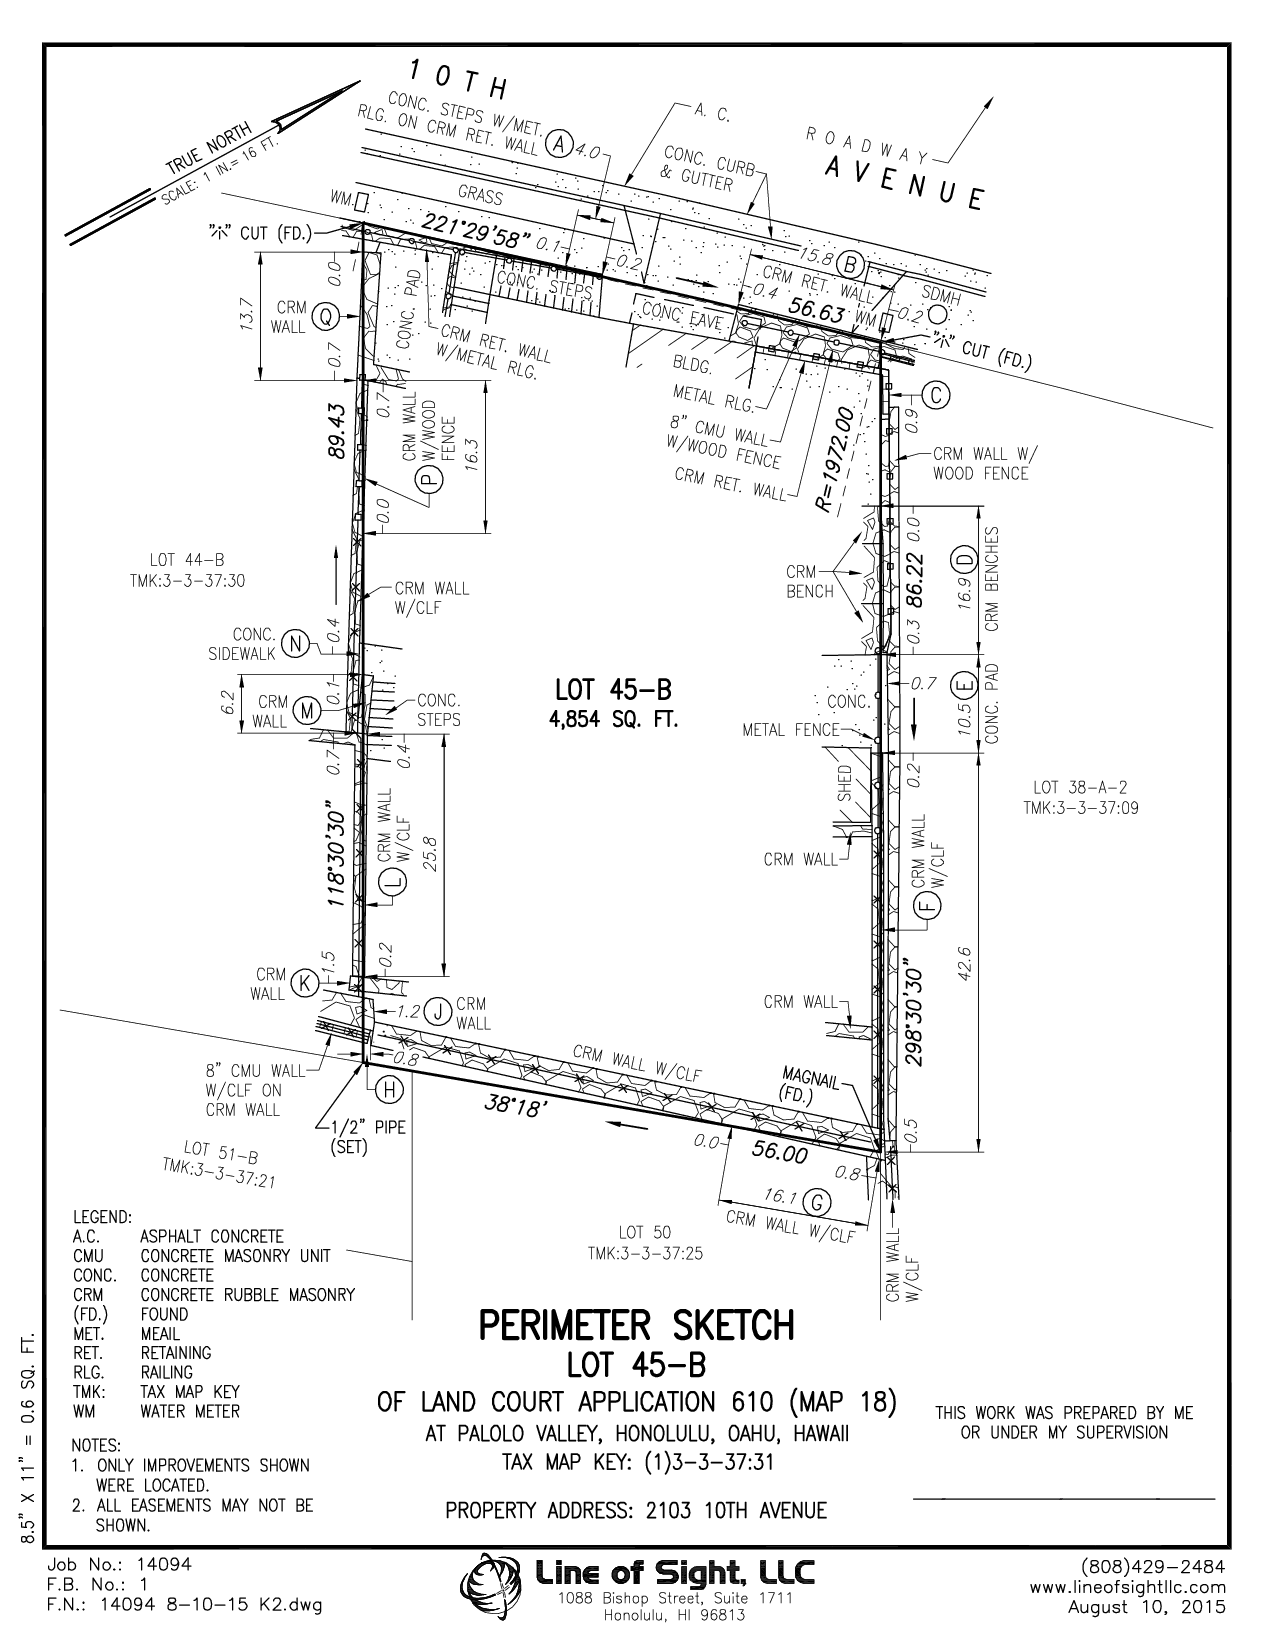 Real Estate (K2) Perimeter Sketch